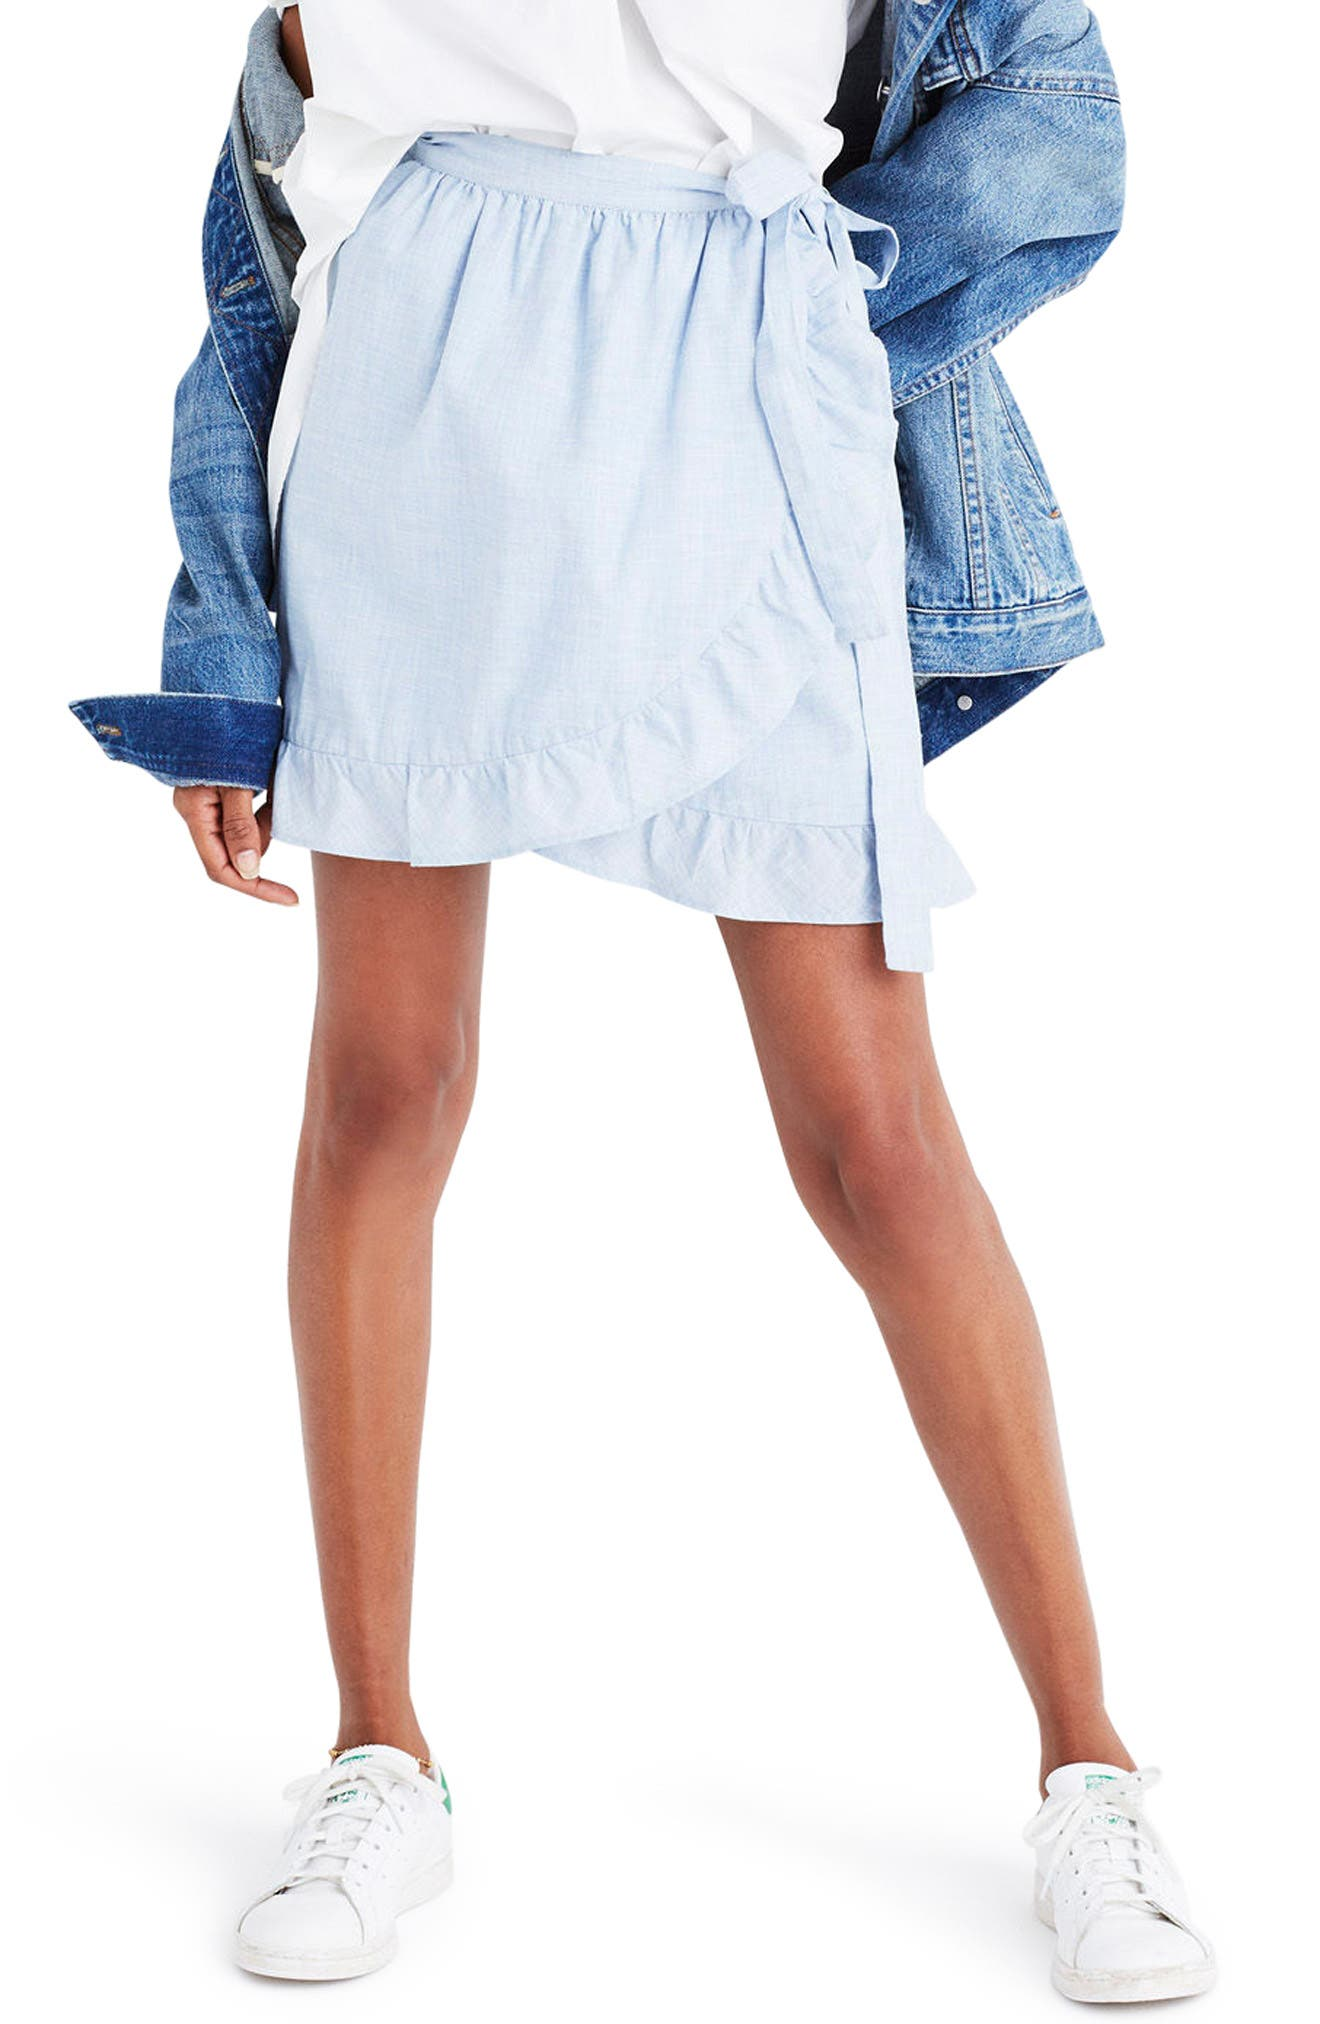 madewell meadow wrap skirt nordstrom